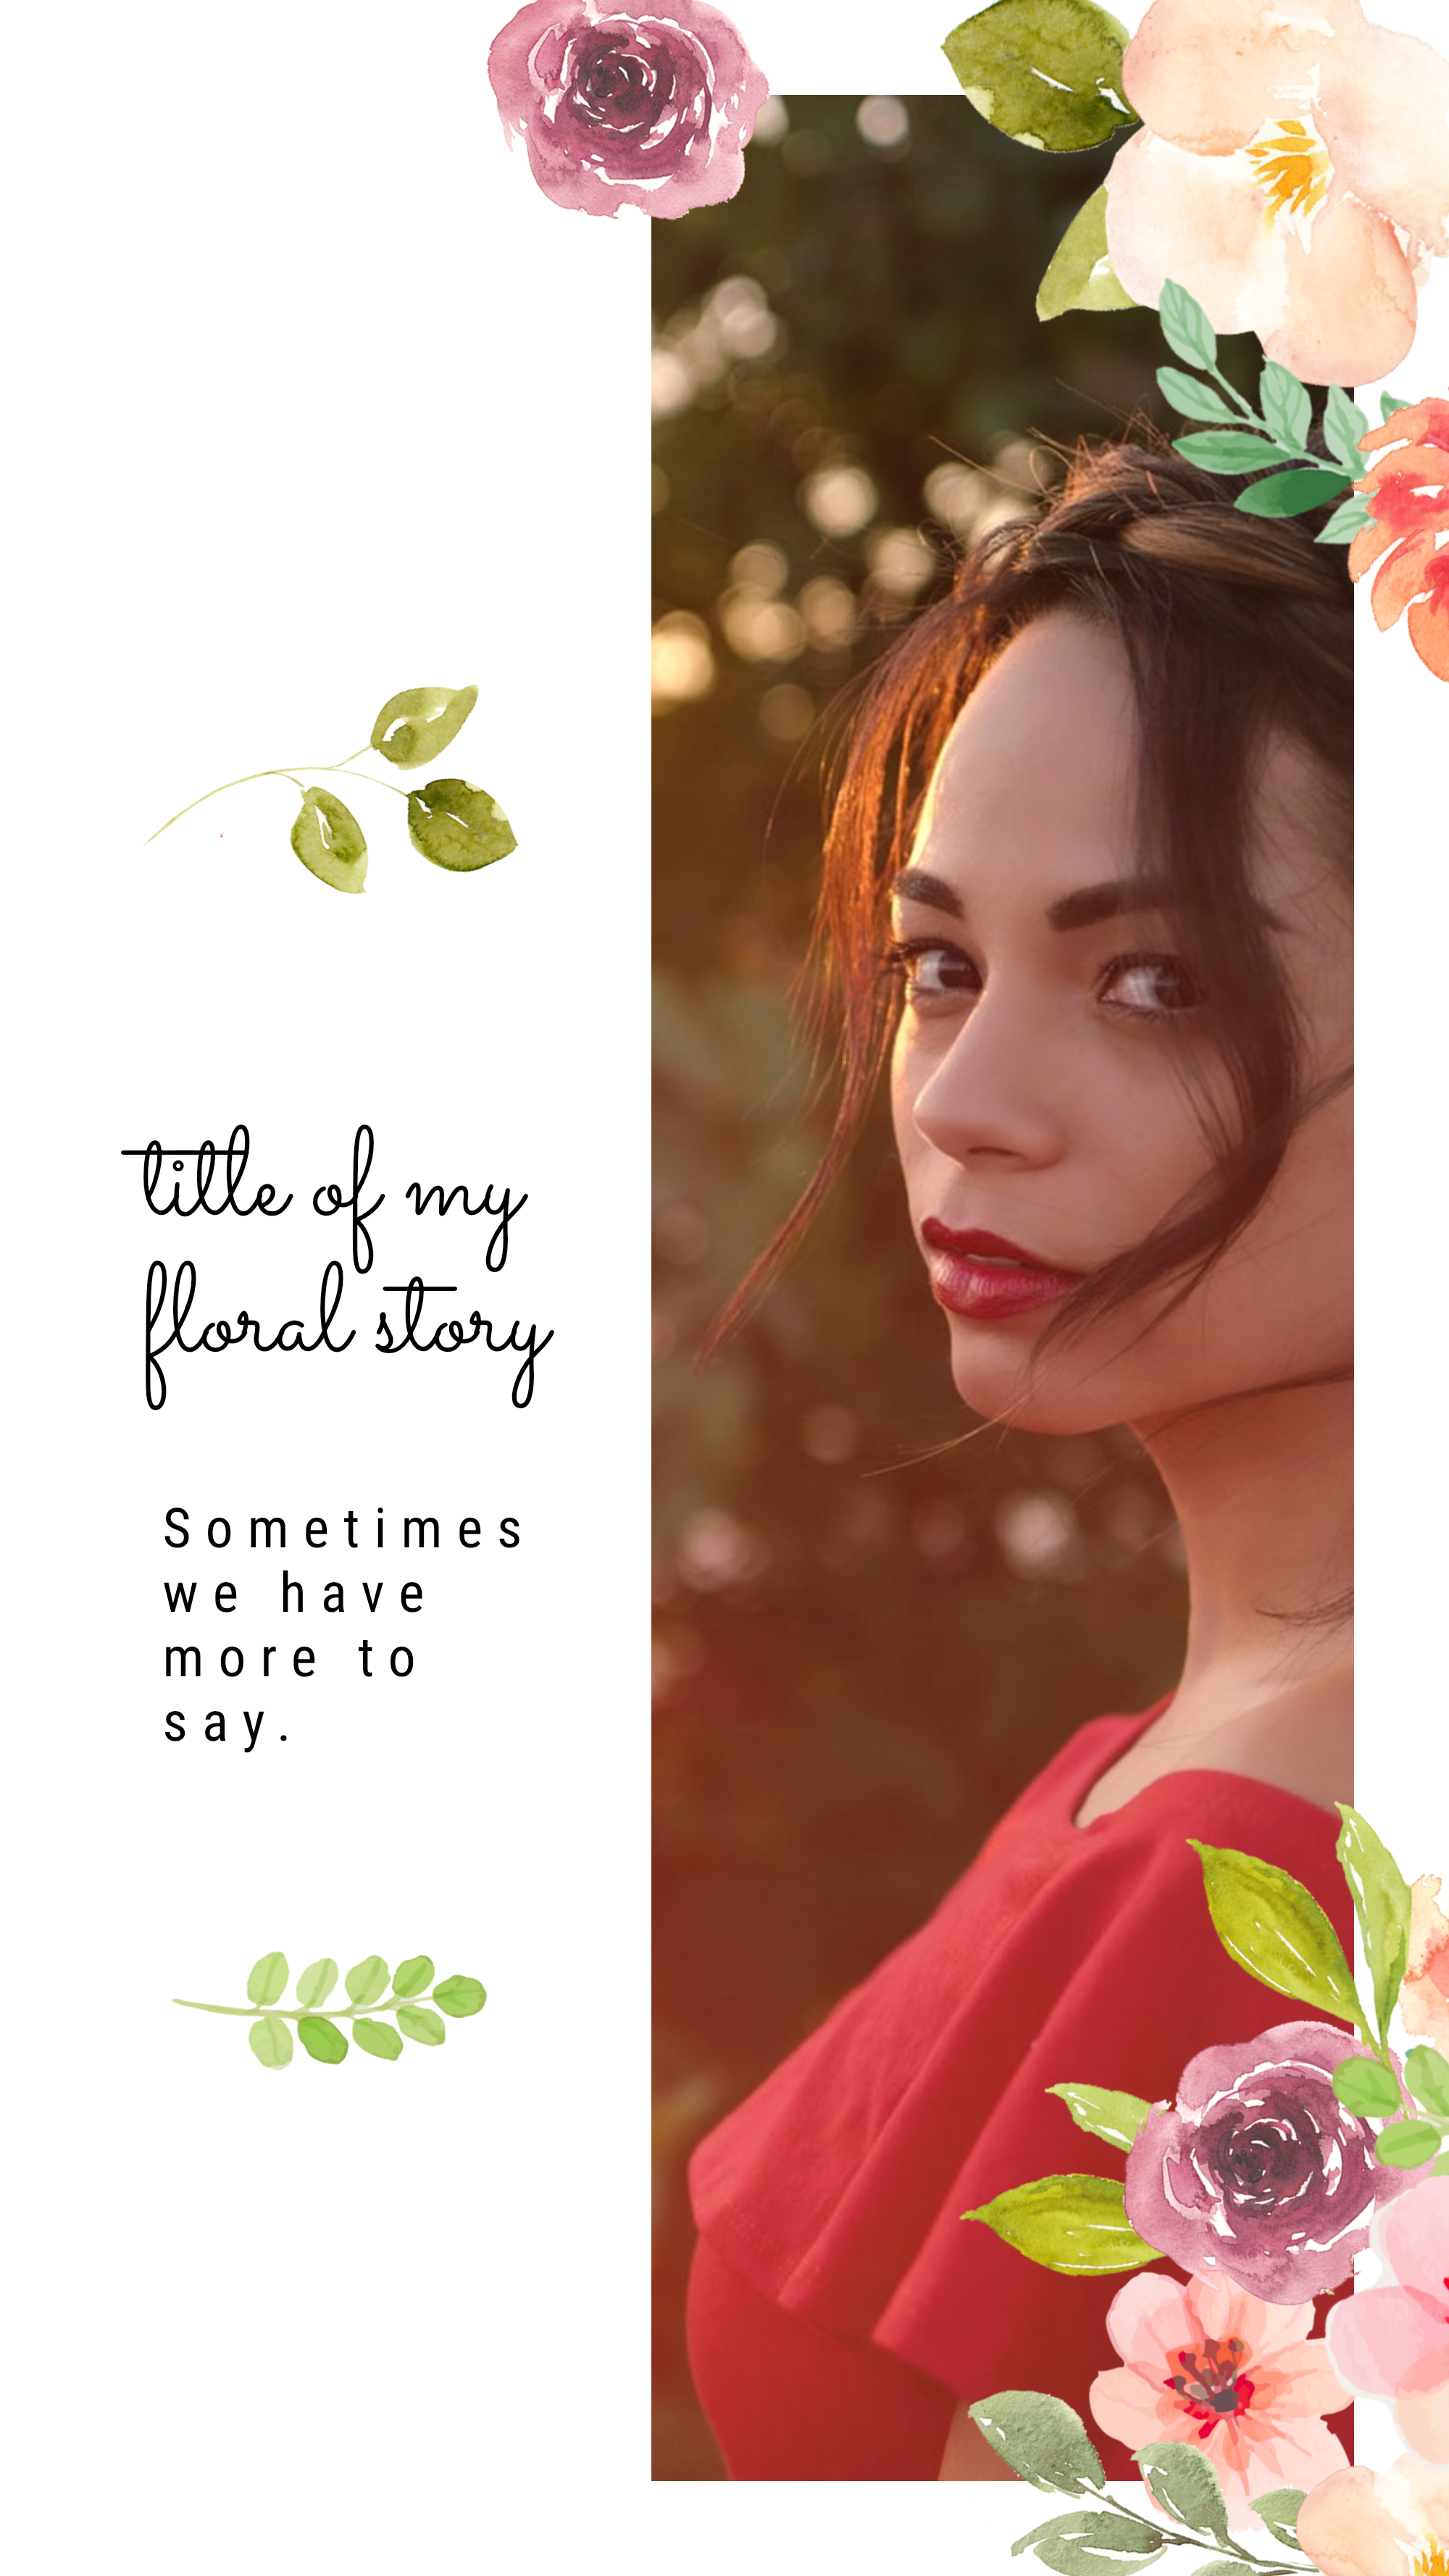 #pastelflowers collection - title of my floral story Sometimes we have more to say. Instagram Story Template